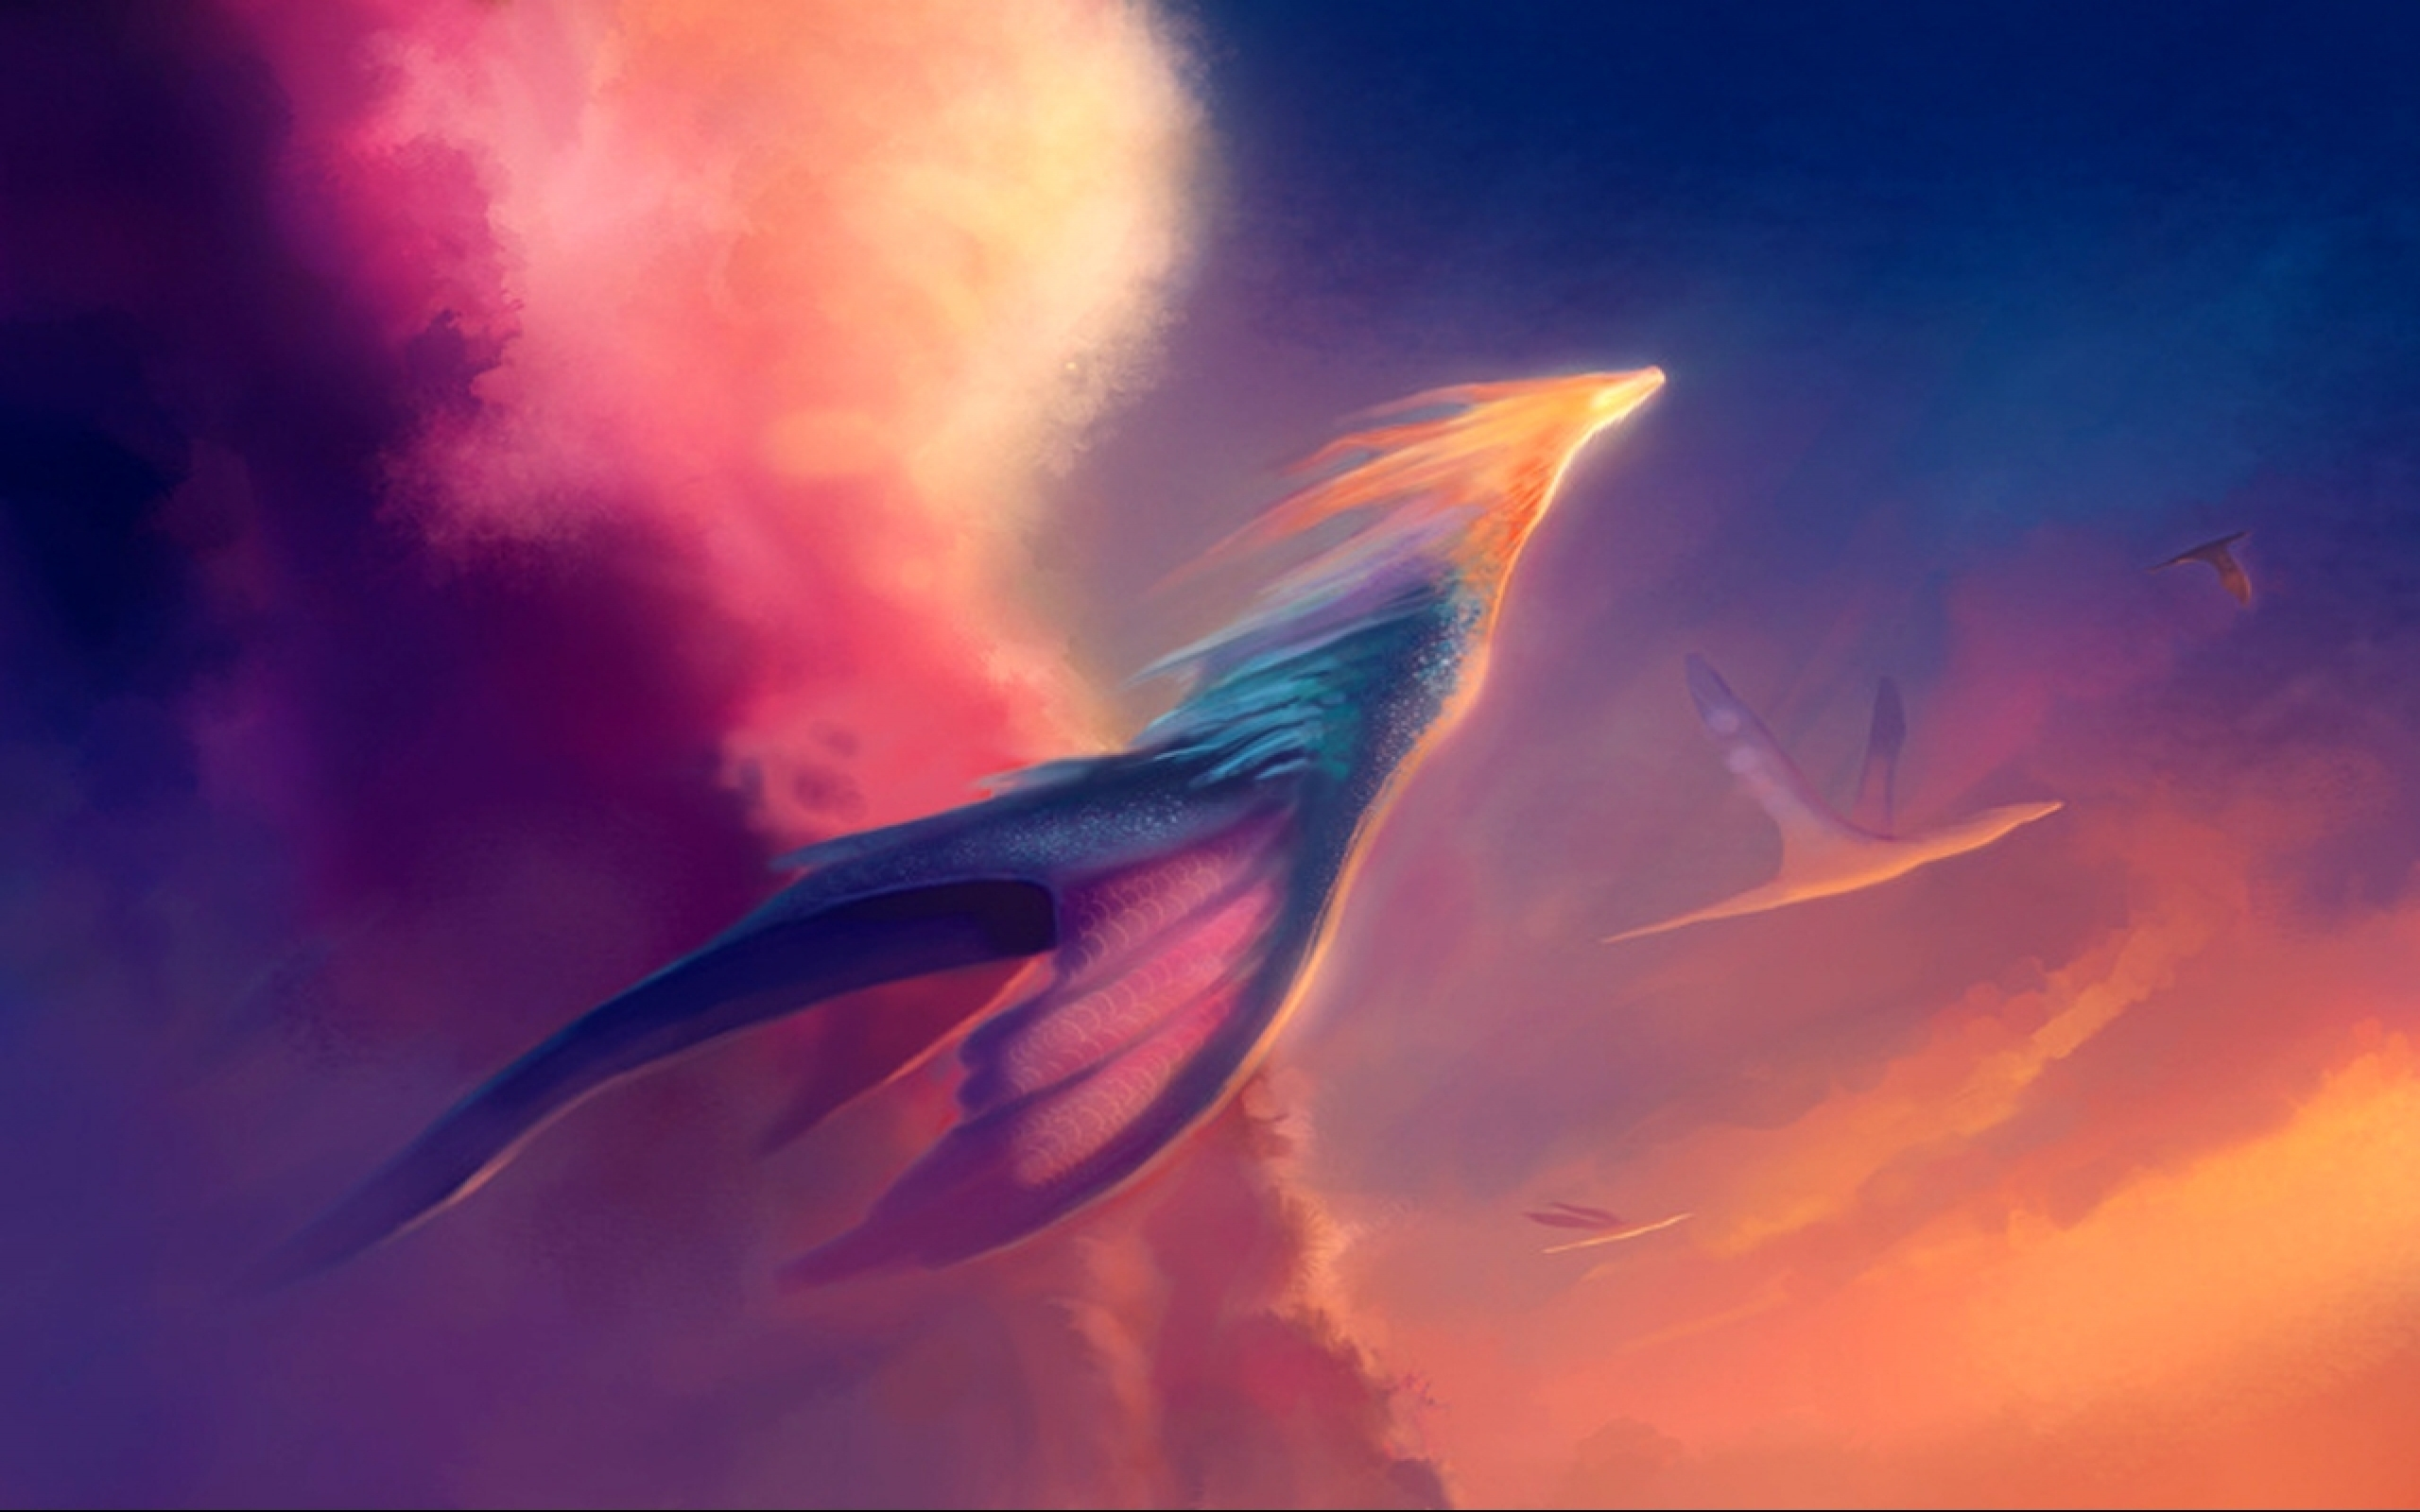 Wallpaper art neo clouds light sun flying dragons wallpapers 2560x1600